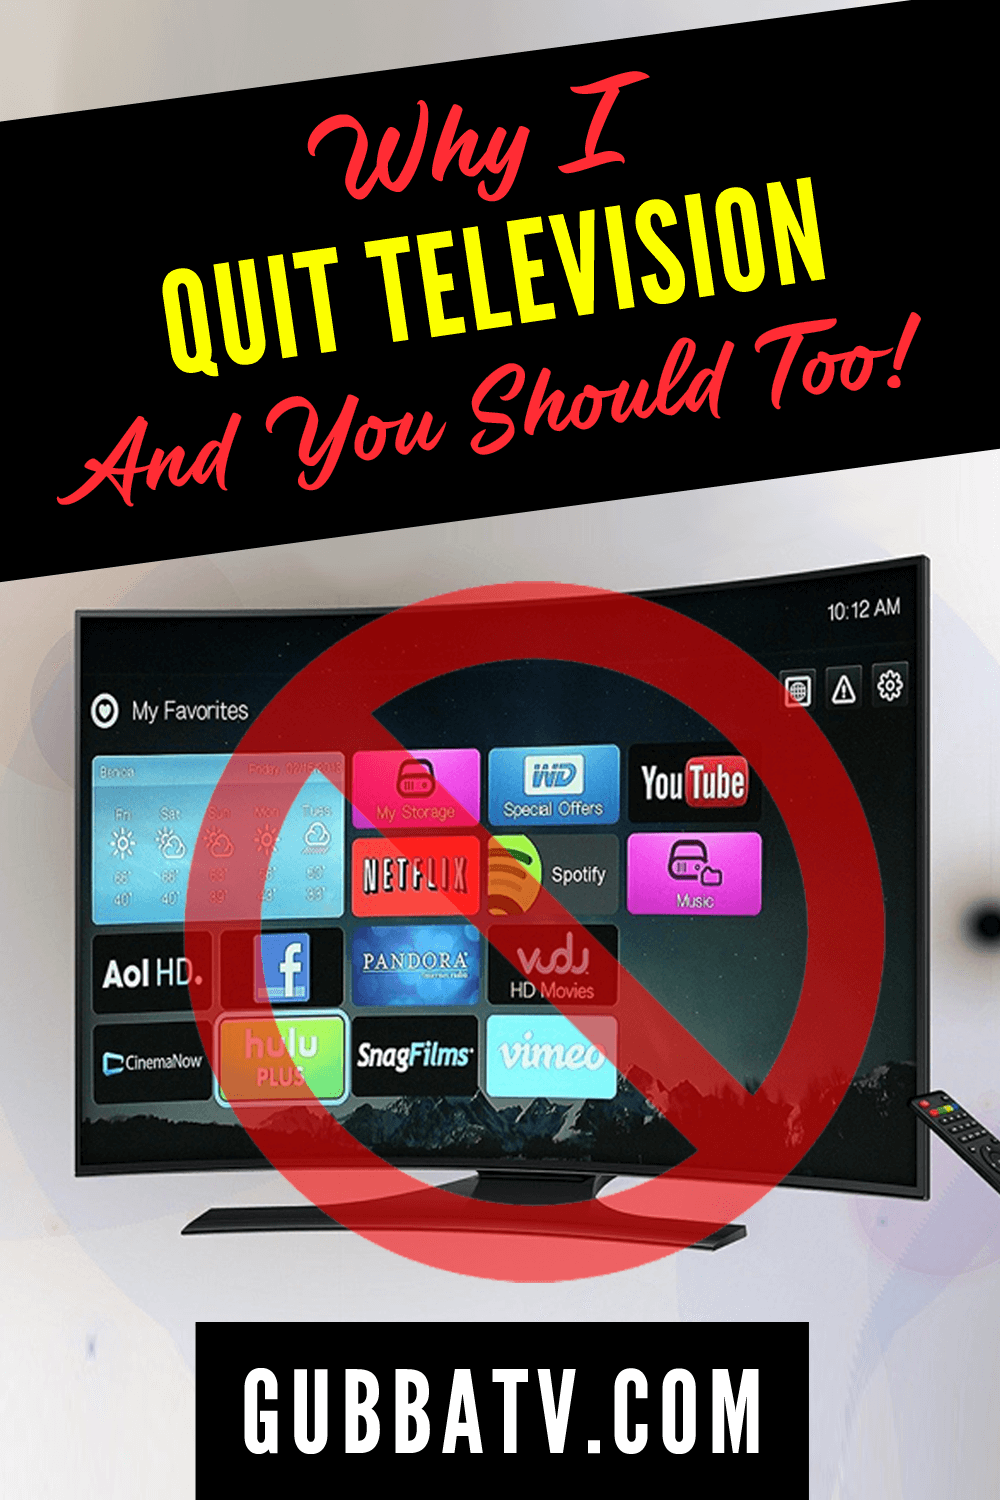 Why I Cancelled Television And You Should Too!